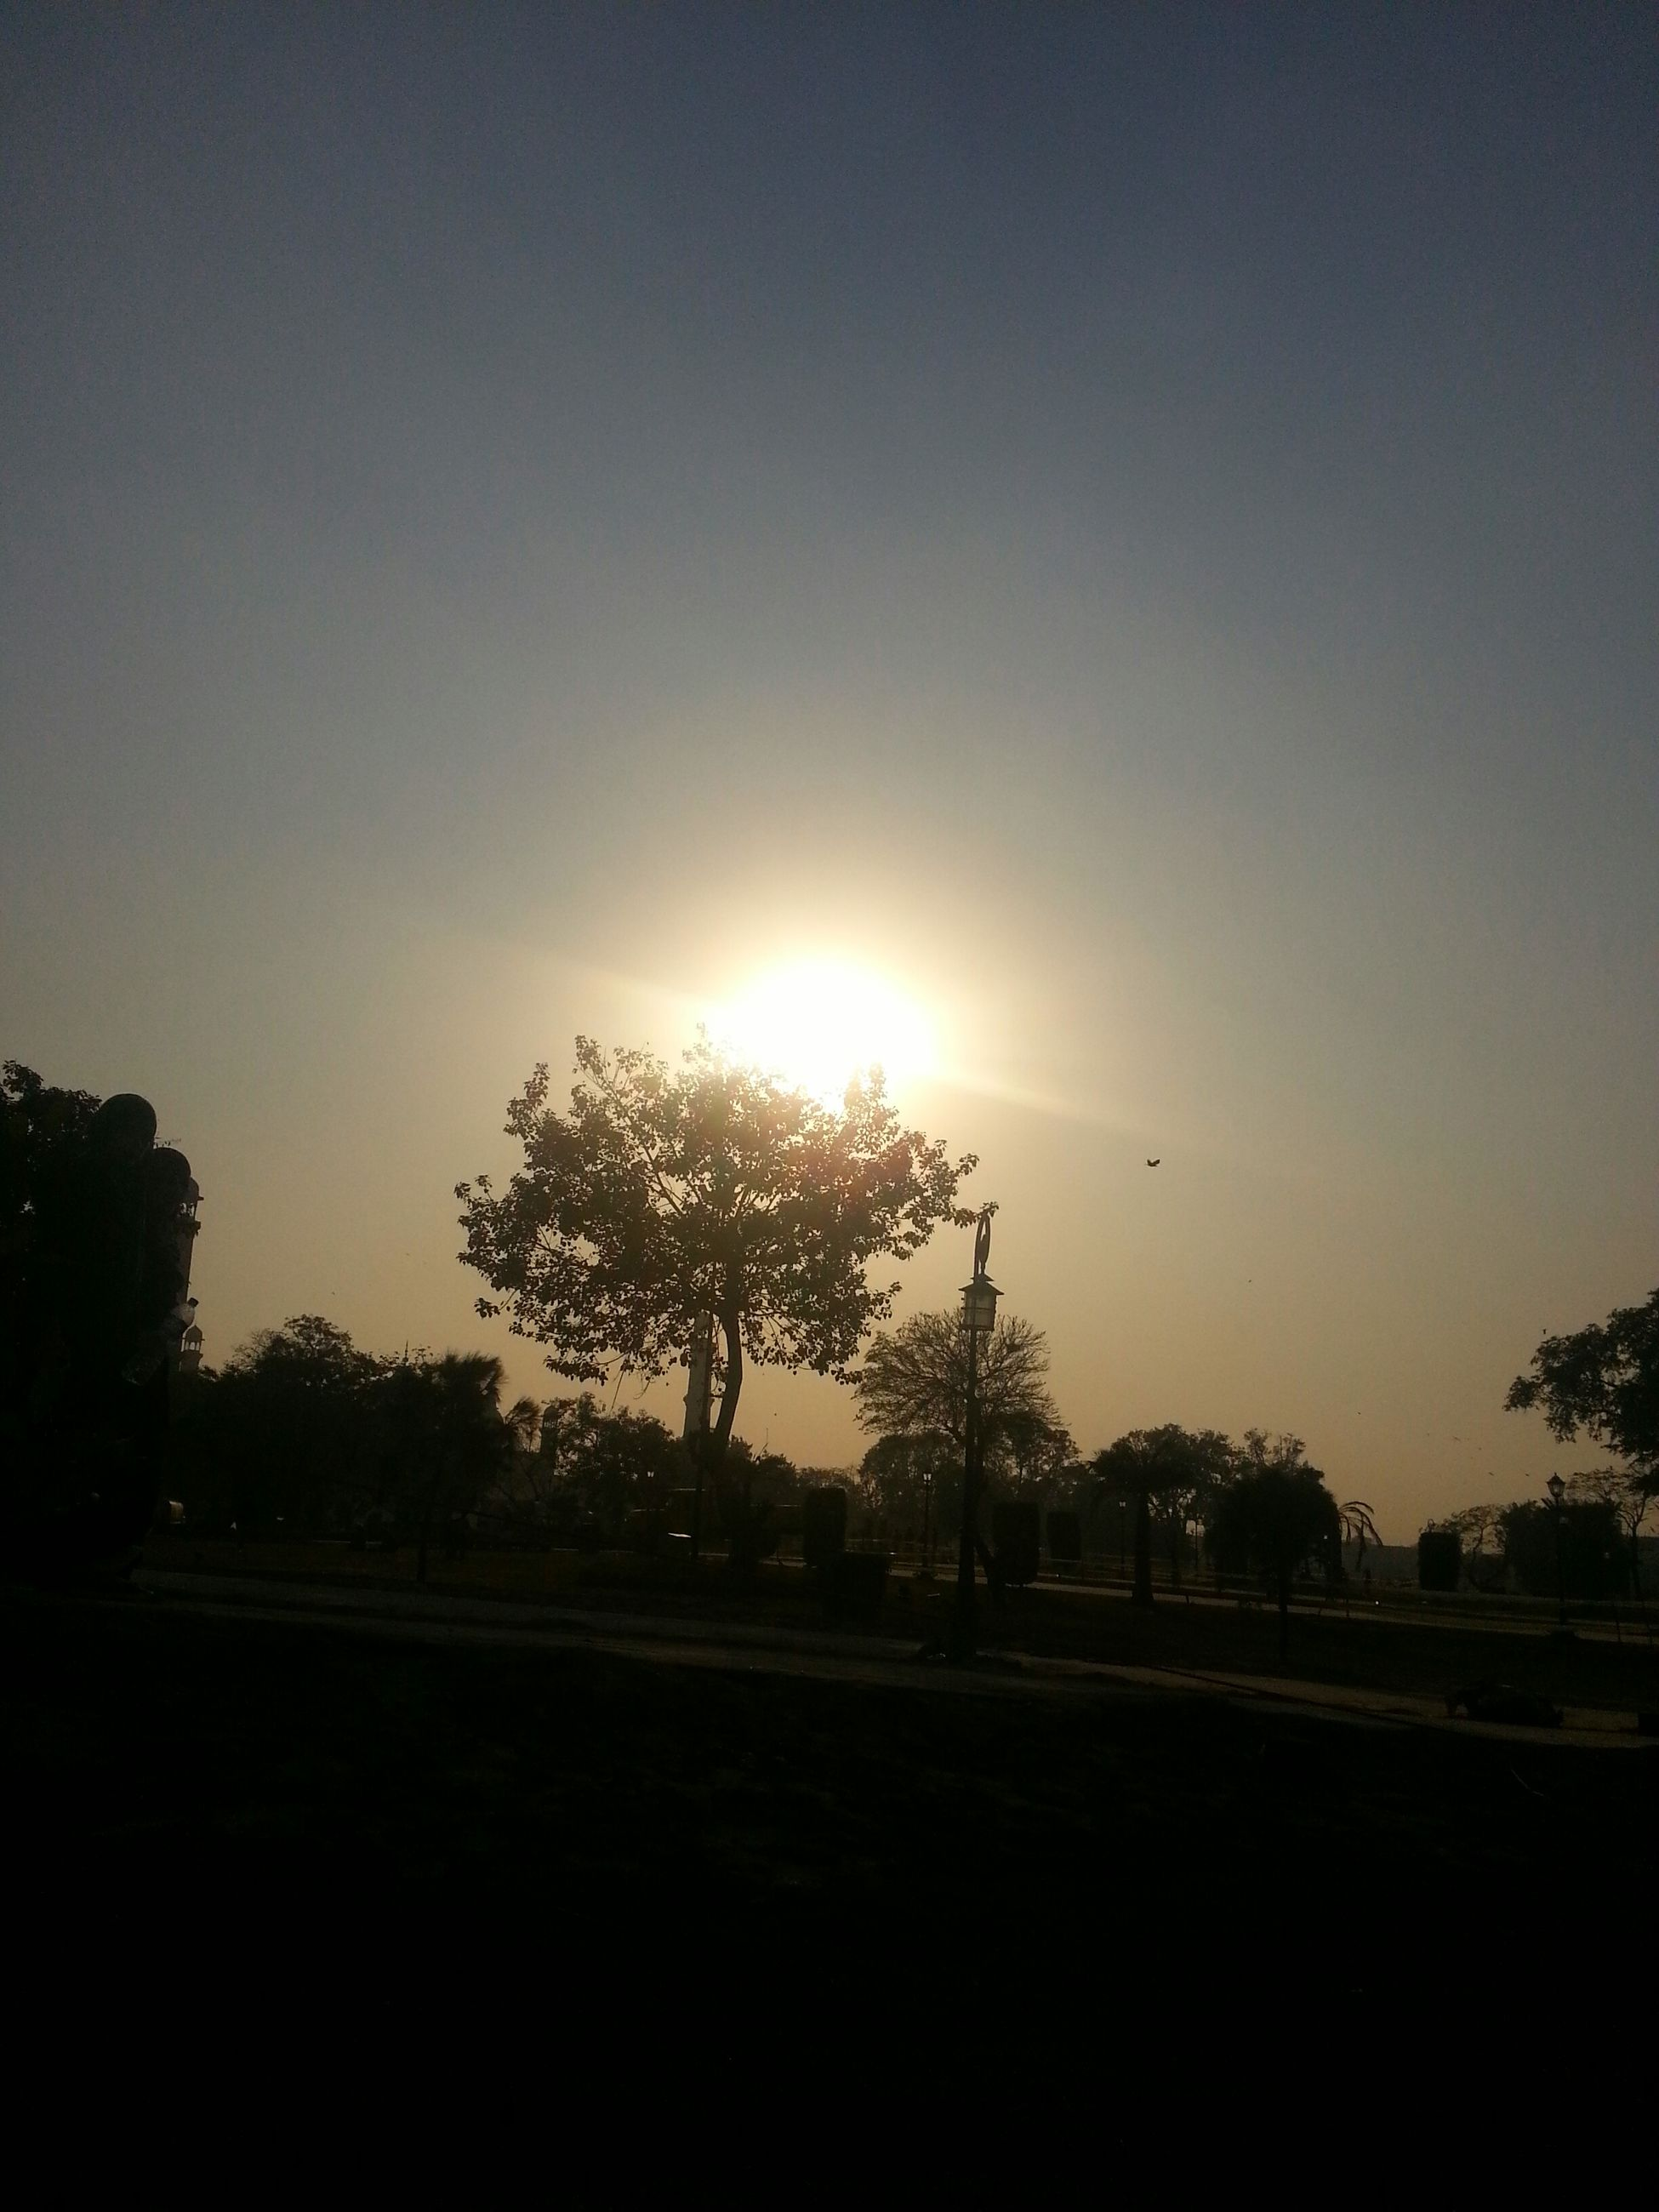 sunset, sun, sunlight, car, sky, tree, nature, silhouette, no people, road, sunbeam, beauty in nature, outdoors, day